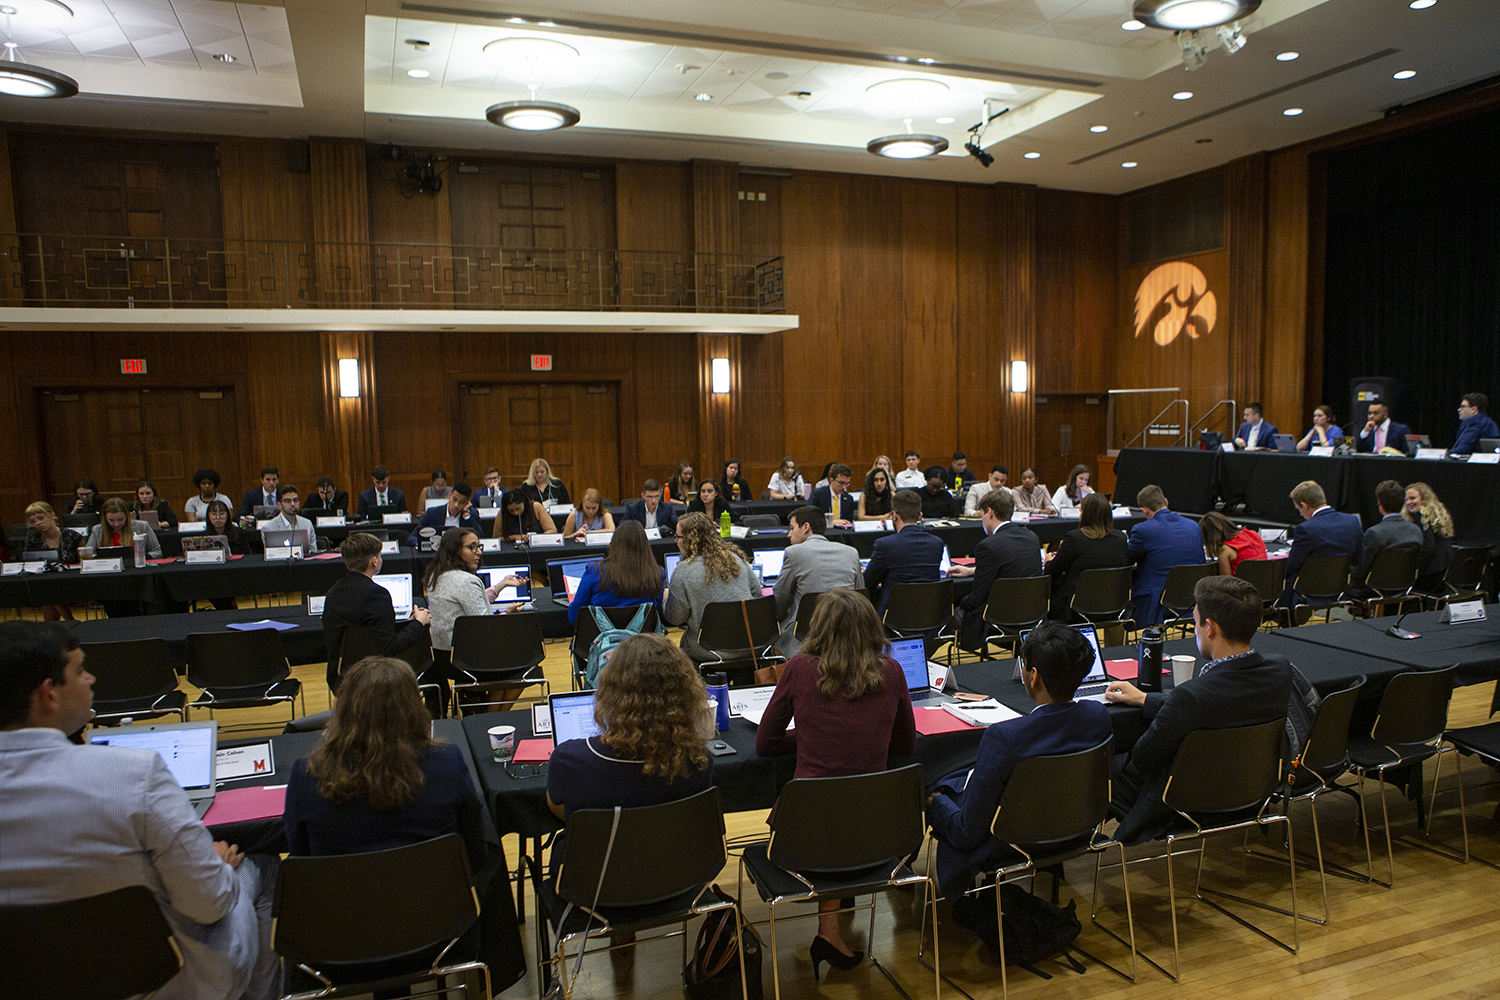 UISG senators discuss legislation for all Big 10 universities during the Big 10 UISG conference in the Second Floor Ballroom of the IMU on July 20, 2019. (Katie Goodale/The Daily Iowan)